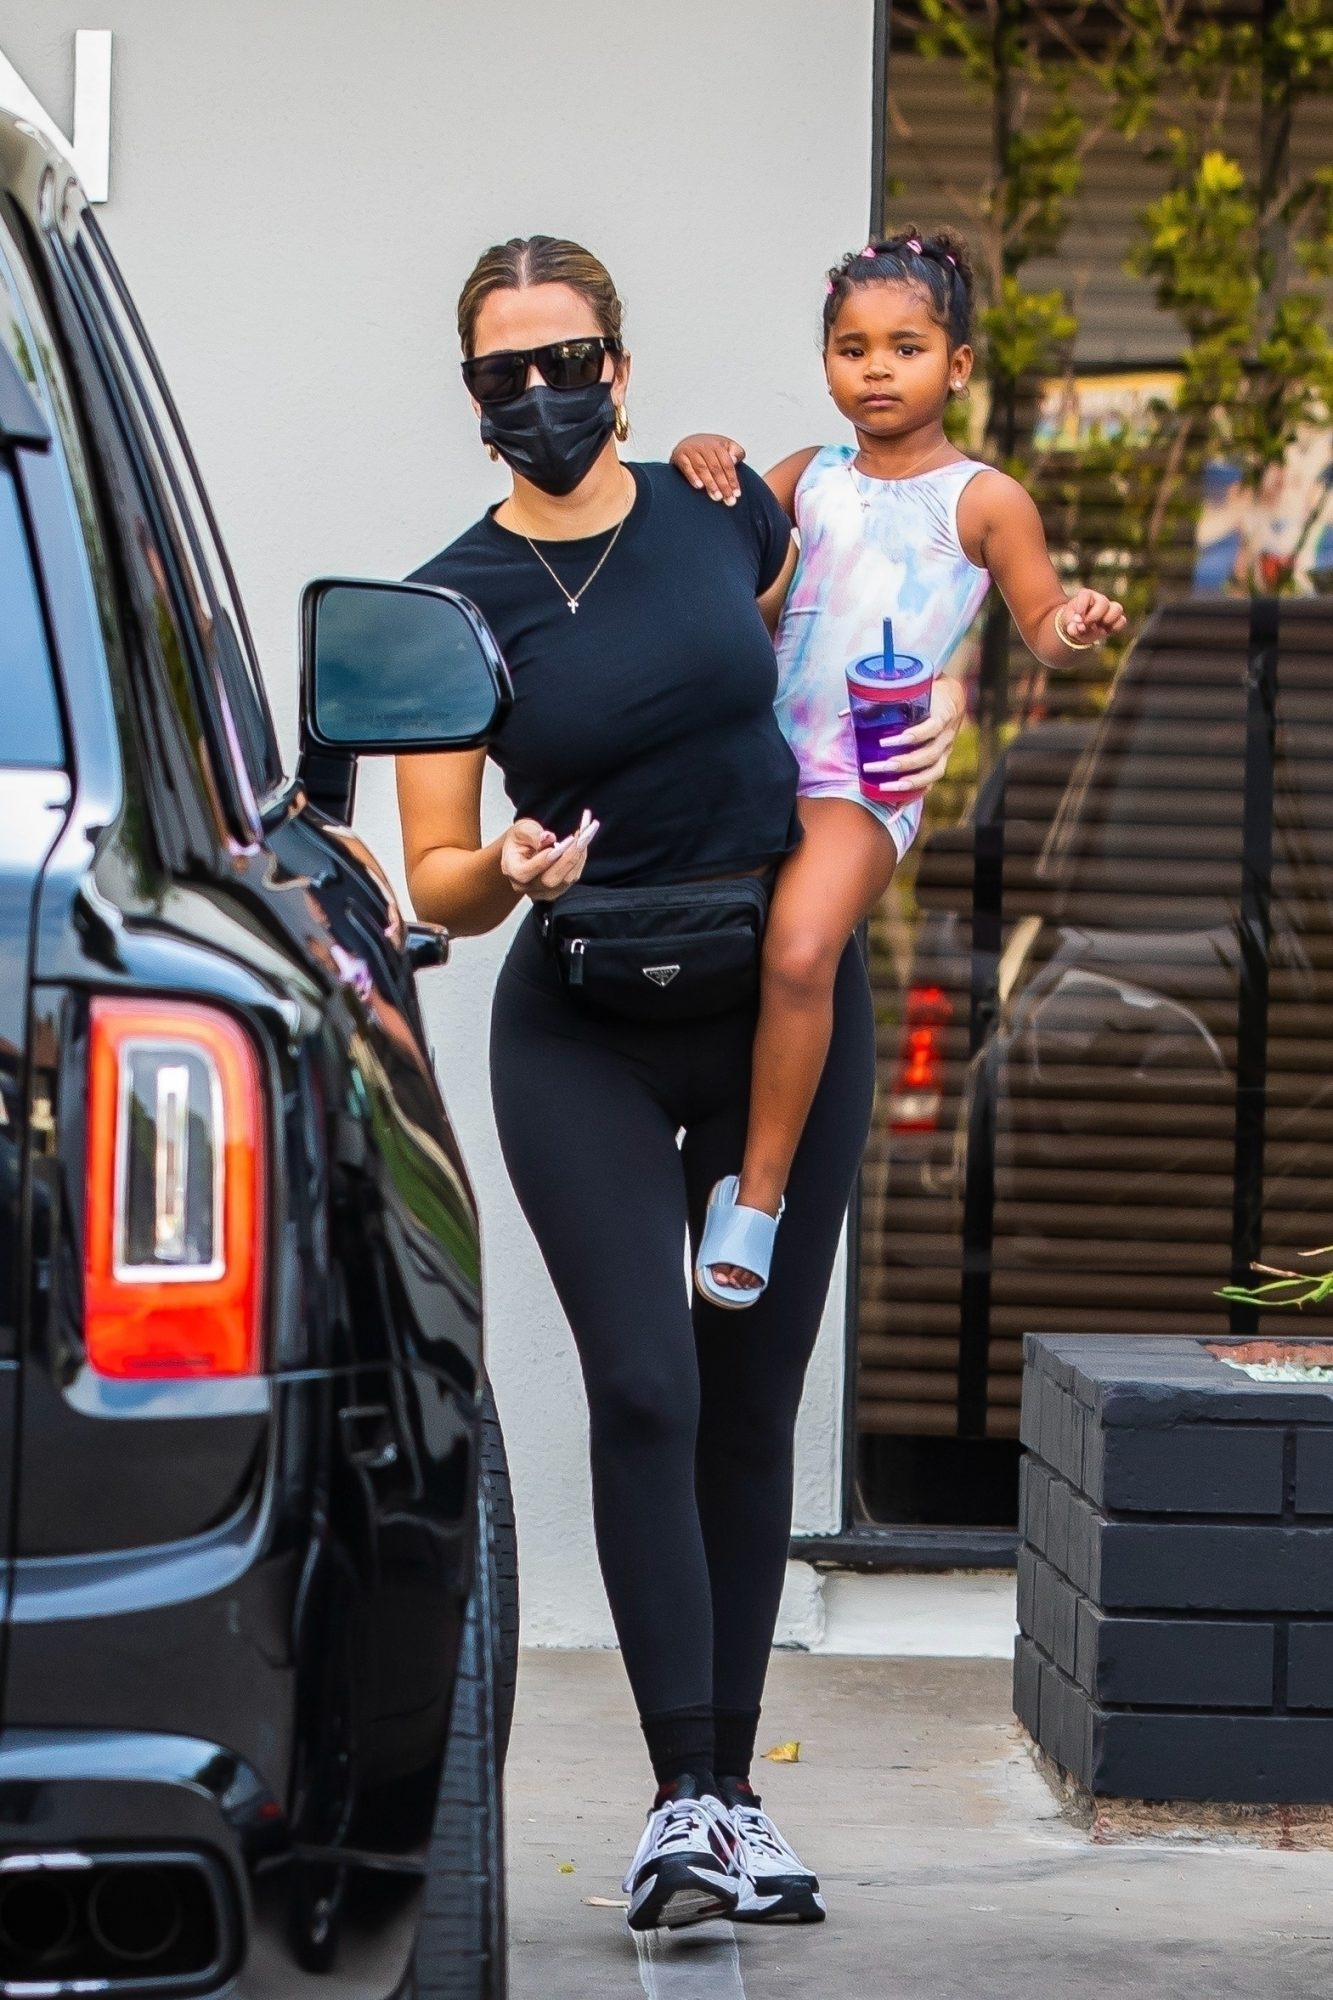 Khloe Kardashian Shows Off her Fit Physique as she Takes True to a Dance Class